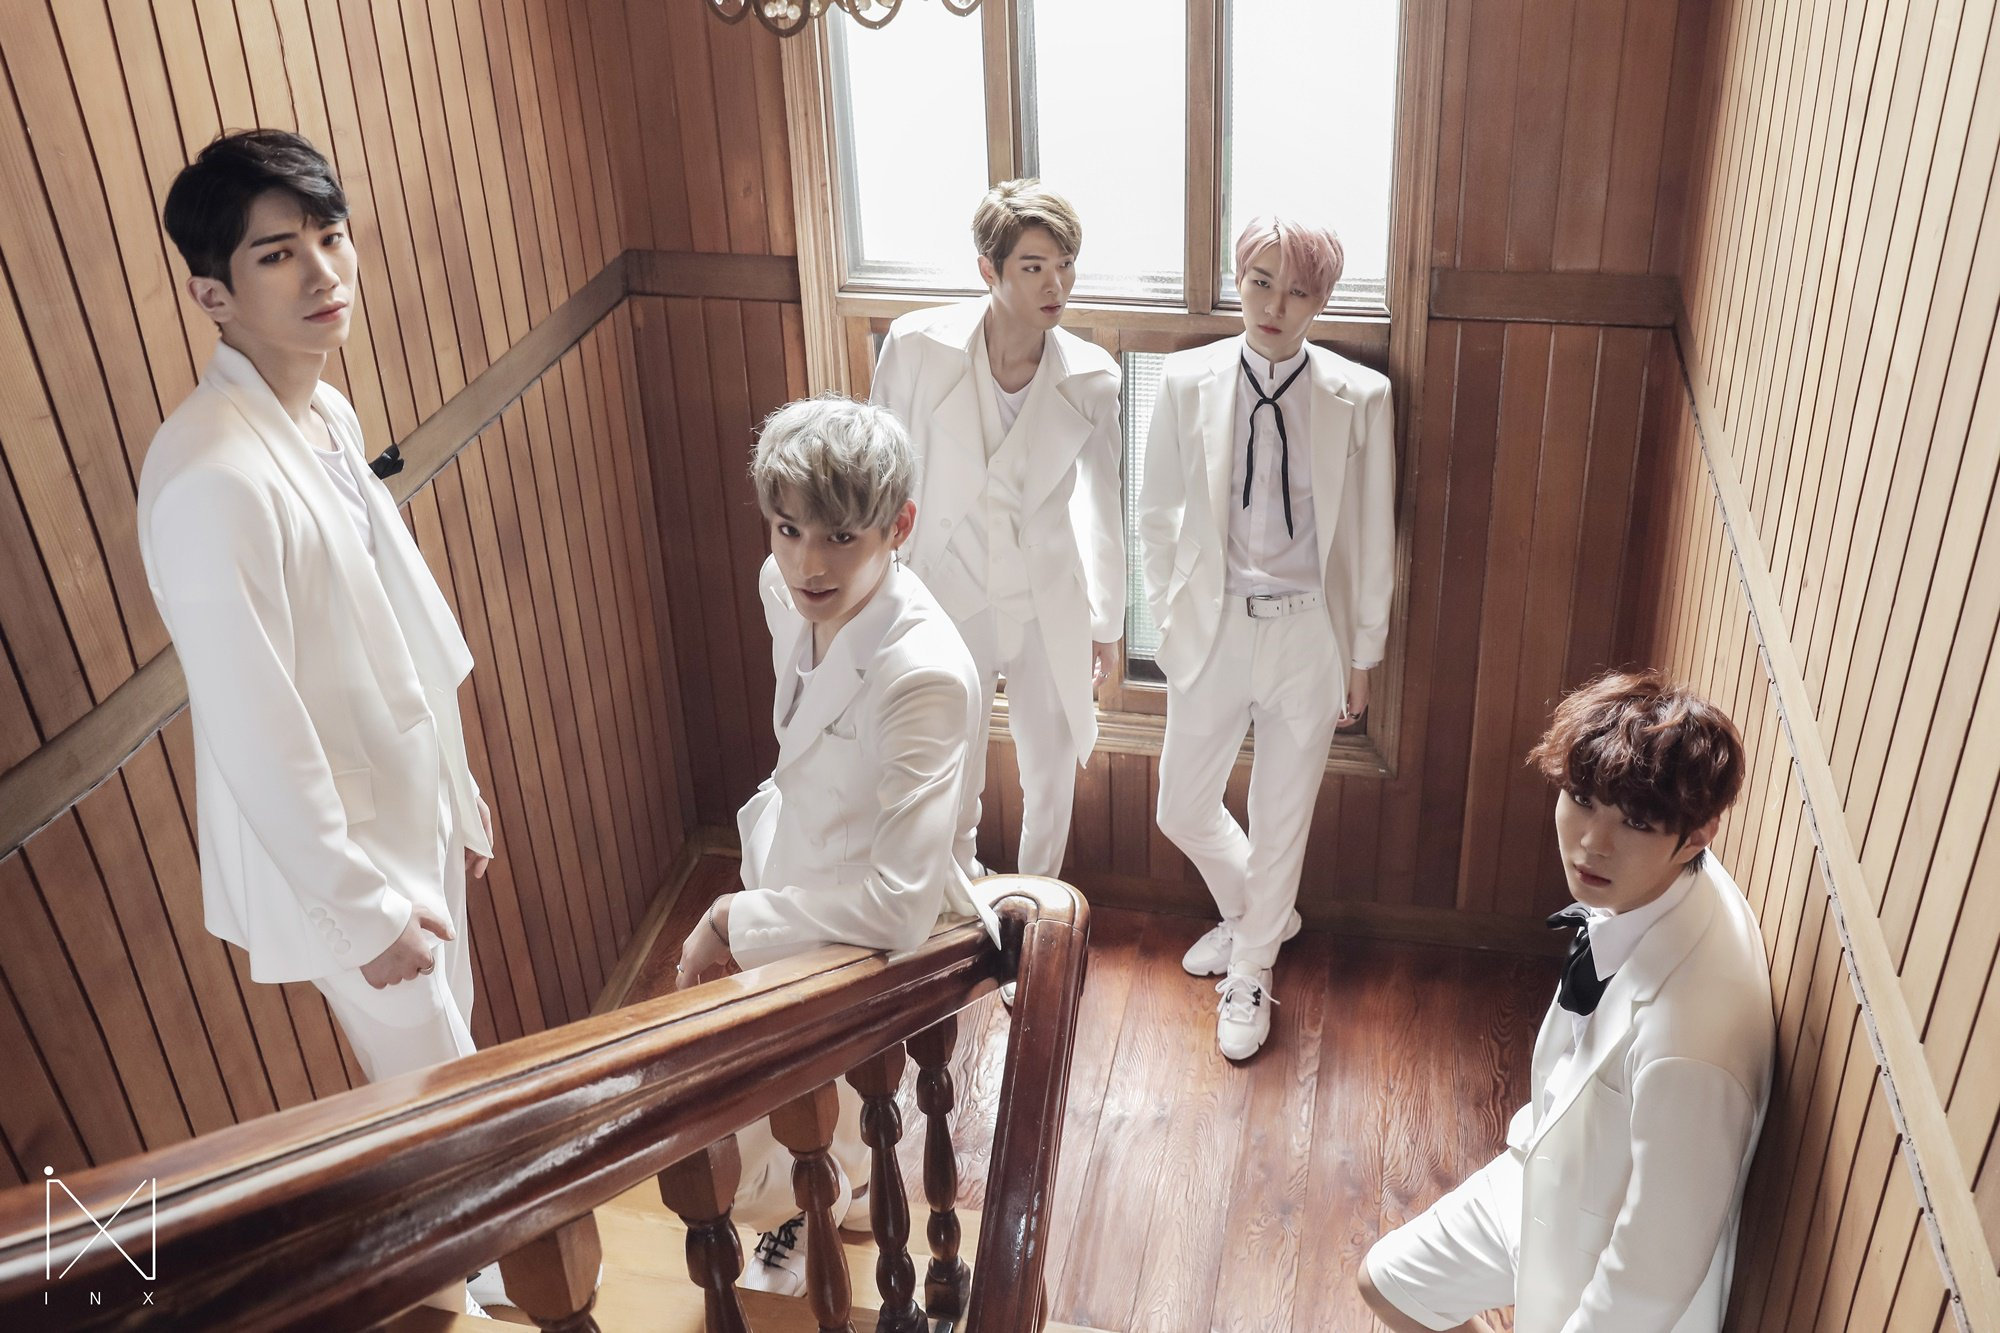 INX To Make First Comeback Soon